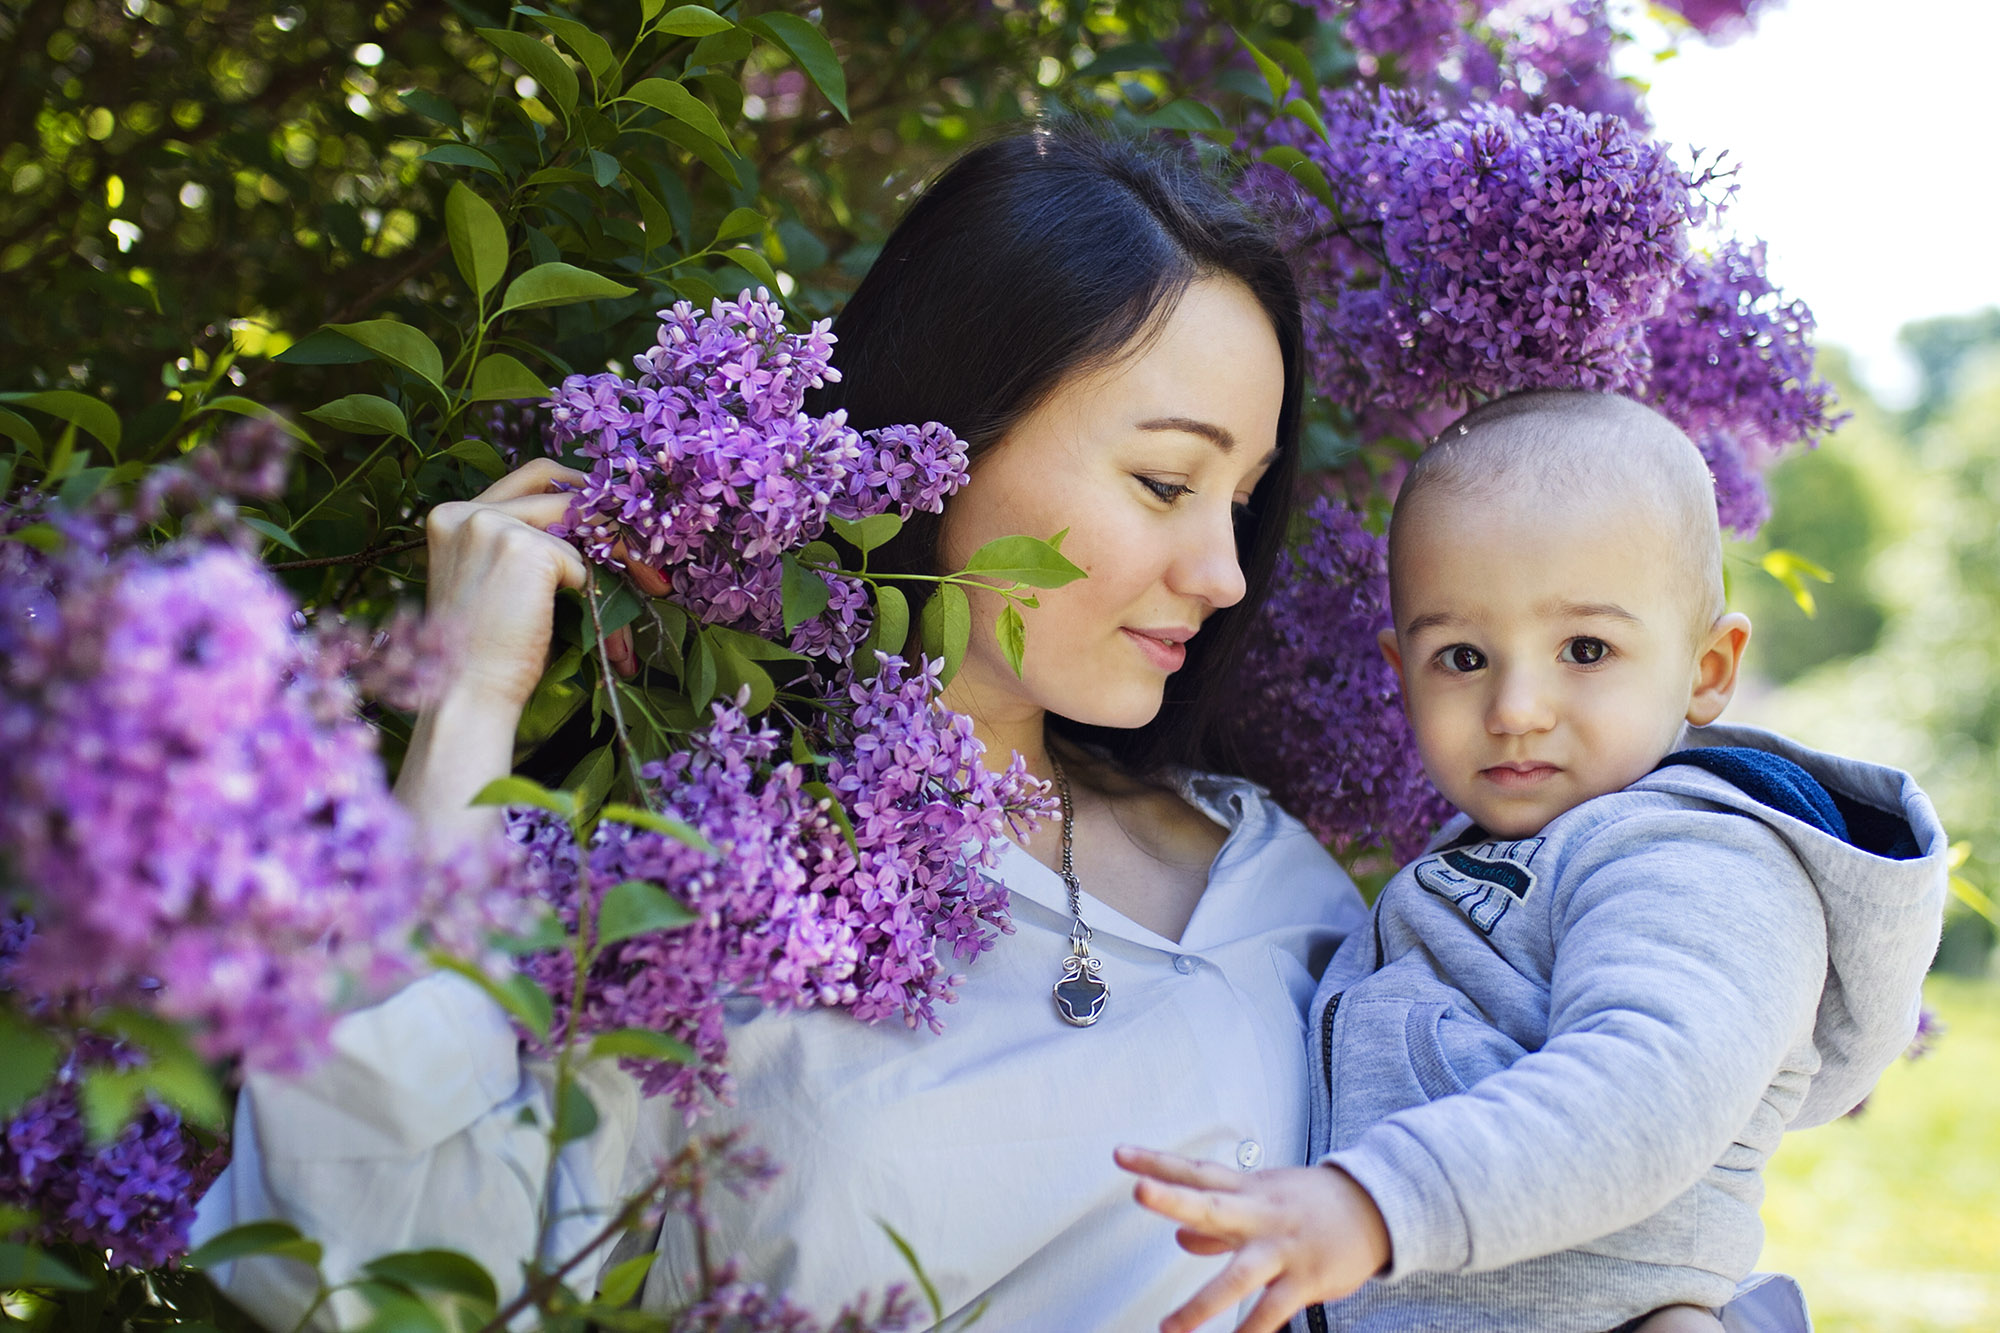 Mother with her small son in flowers